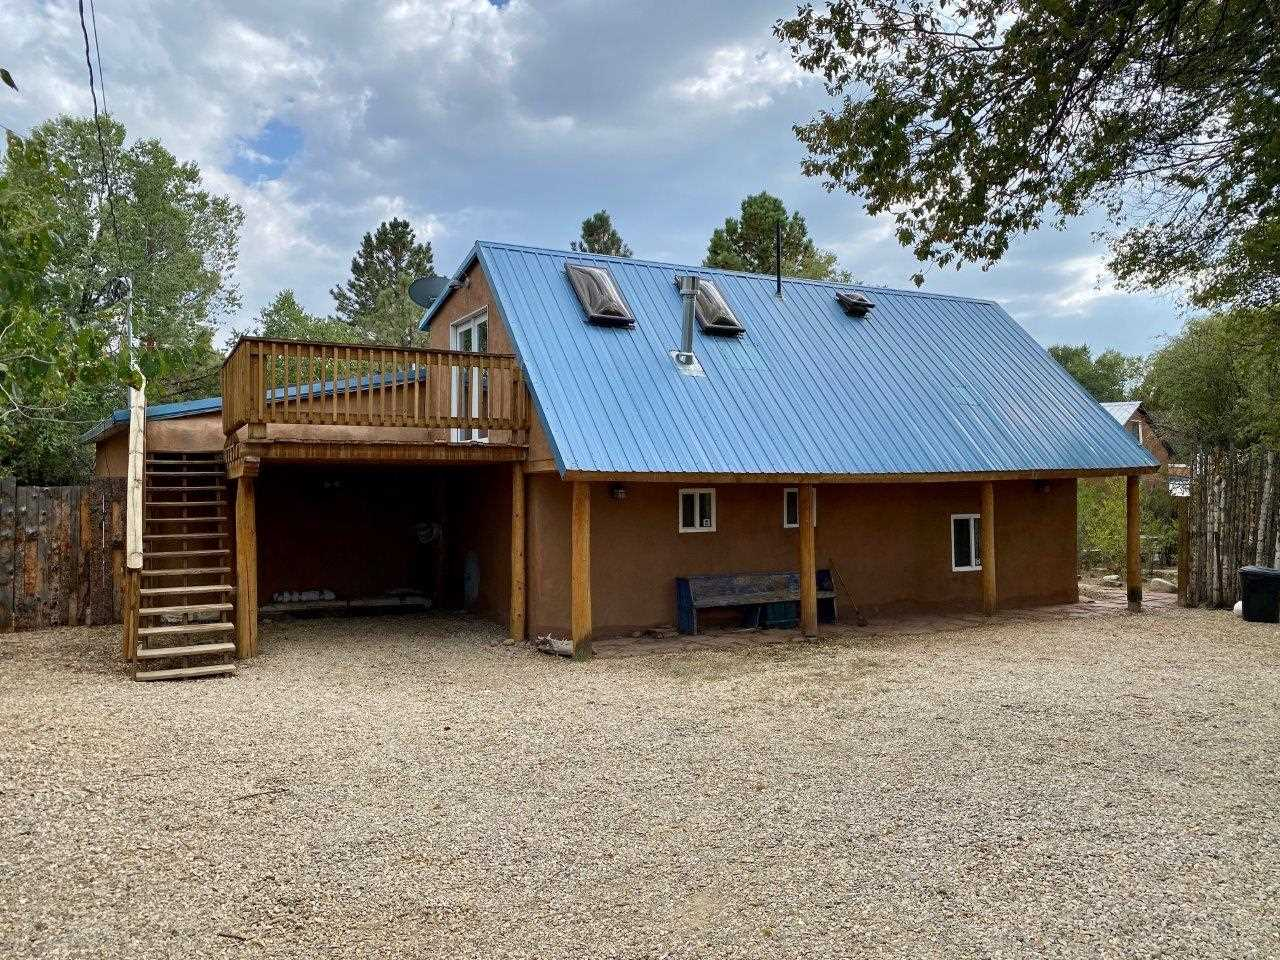 TAOS TRUE- It's the real thing.  The one-story main home of this property is a triple thick adobe with a 1,574 sq.ft. 2BR/2BA adobe home with flex space for library or office, plus a separate 1BR/1BA casita upstairs.  With parts rumored to be over 100yrs old, it was tastefully remodeled in 2007-8 to retain its old world feel yet updated for today.  The thick, smooth walls w/ hand troweled diamond finish plaster throughout. There are viga ceilings and wood plank floors through most of the house for that Taos ambiance. The indoor spaces flow to the huge hacienda style portal which graces the front and entrance and provides places for dining al fresco and  having a socially distanced happy hour with friends all in a serene natural setting. The living room boasts a delightful and efficient Jotul gas log stove and the adjoining flex room could be used for media, a library/office, or formal dining room.  The kitchen is spacious and bright and large enough for a dining table and has granite countertops and stainless appliances.  Out the kitchen is another portal and a fenced area for pets.  Upstairs you'll find the sweet, bright and light 1BR/1BA casita with full kitchen and W/D.  Enjoy the deck for star gazing or lazing.  The yard has perennials and a dry creek bed and fountain that can be restored and there's room for gardening.  Nat'l gas and community water & sewer.  This property provides lots of options.  Short or long term rentals, home/office, house/guesthouse.  You choose.